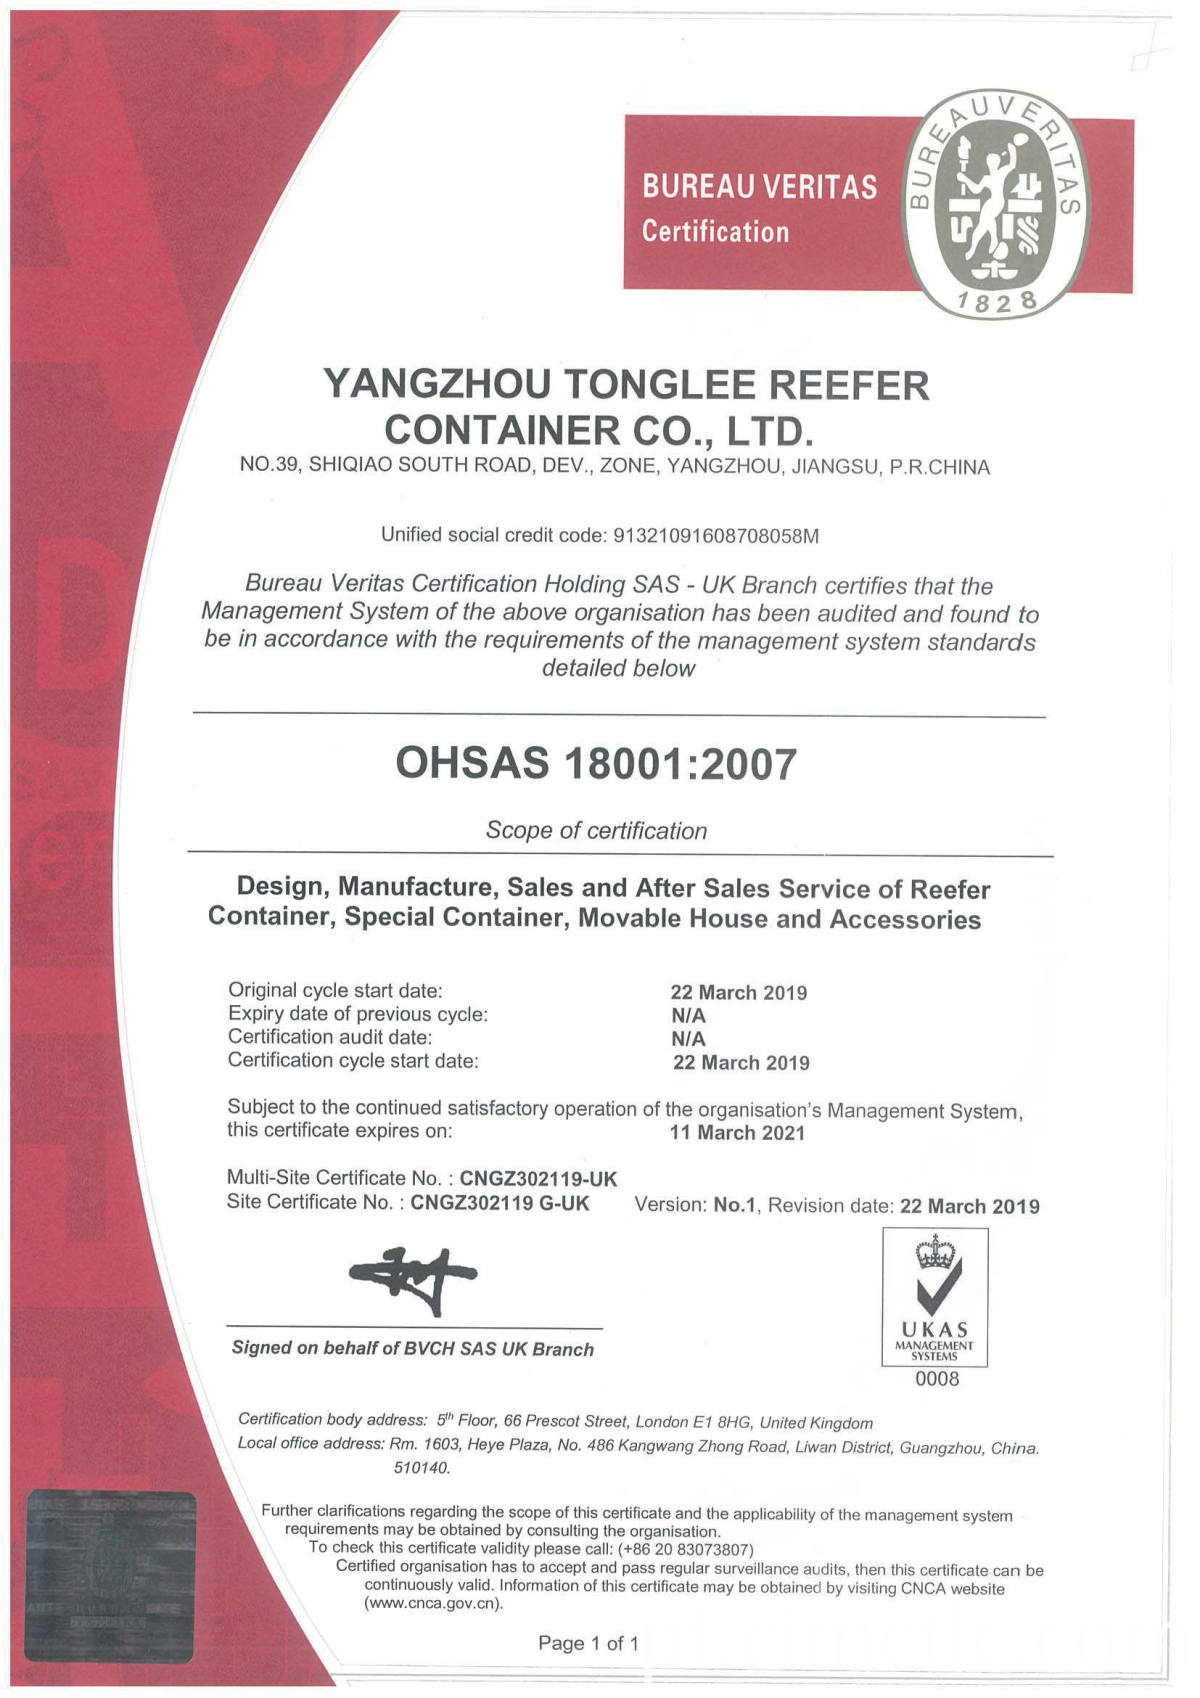 OSHAS 18001 certification for ISO Standard Generator Container